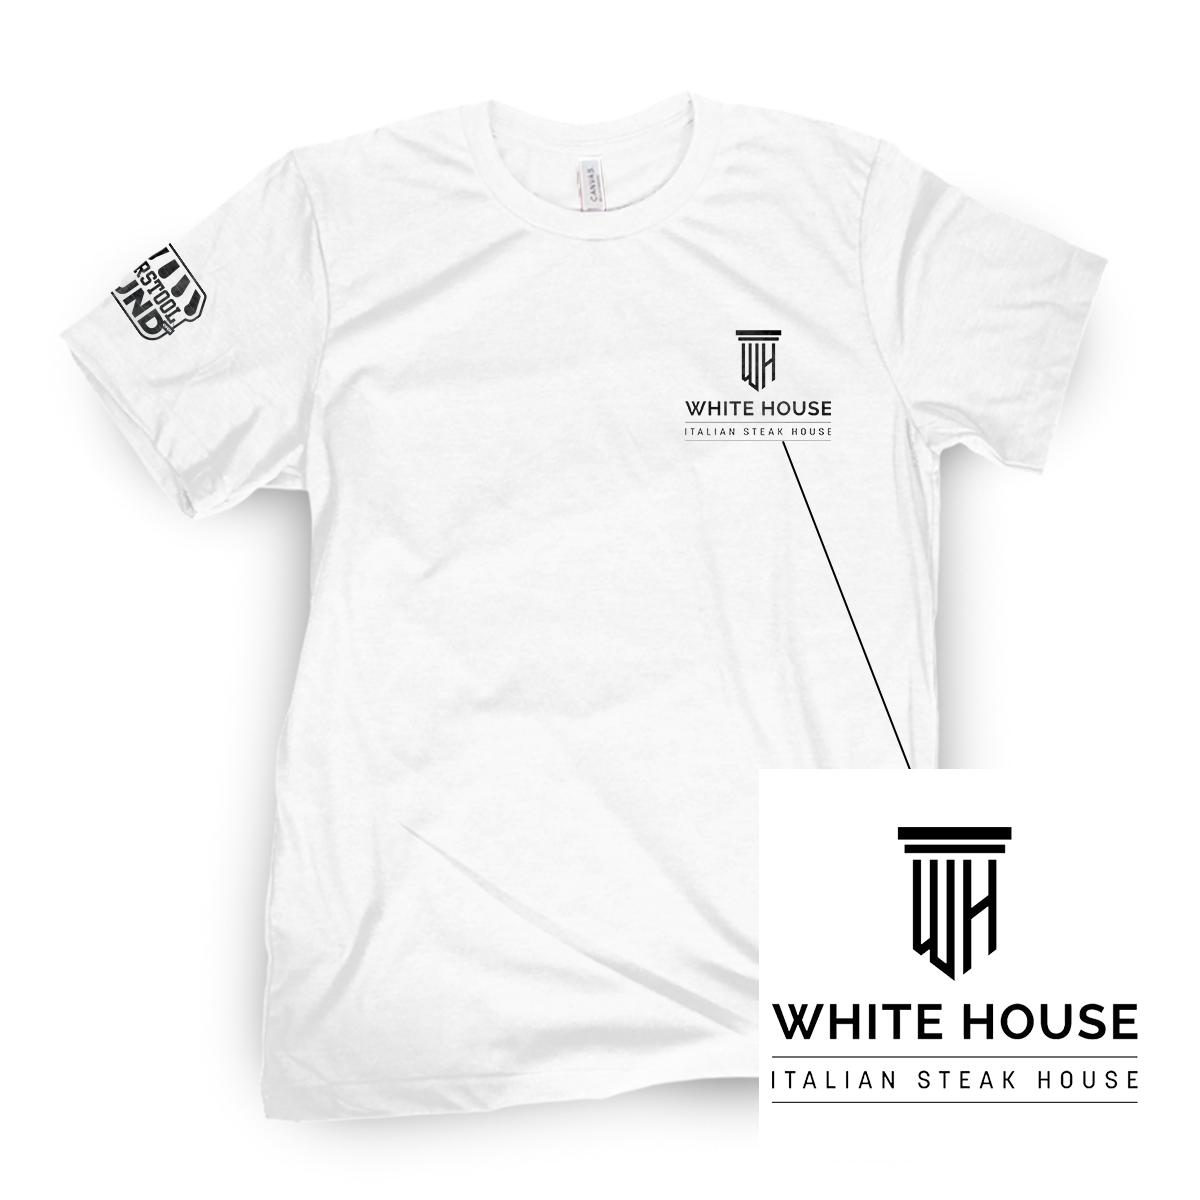 White House Italian Steak House Tee